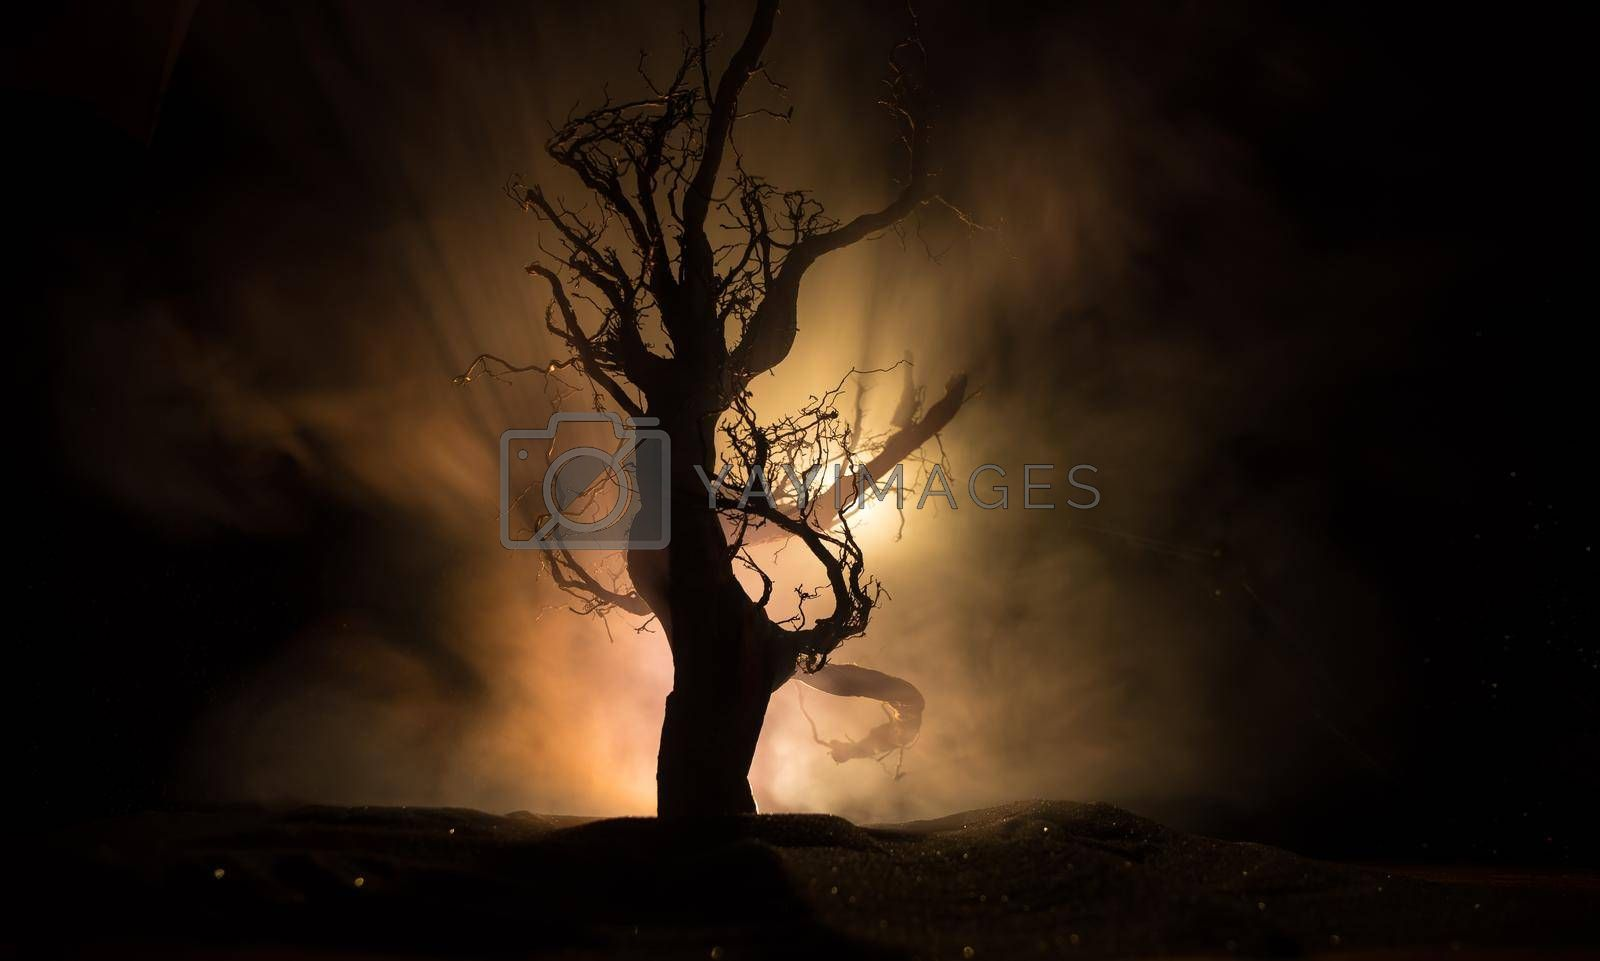 Spooky dark landscape showing silhouettes of trees in the swamp on misty night. Night mysterious forest in fire and dramatic cloudy night sky